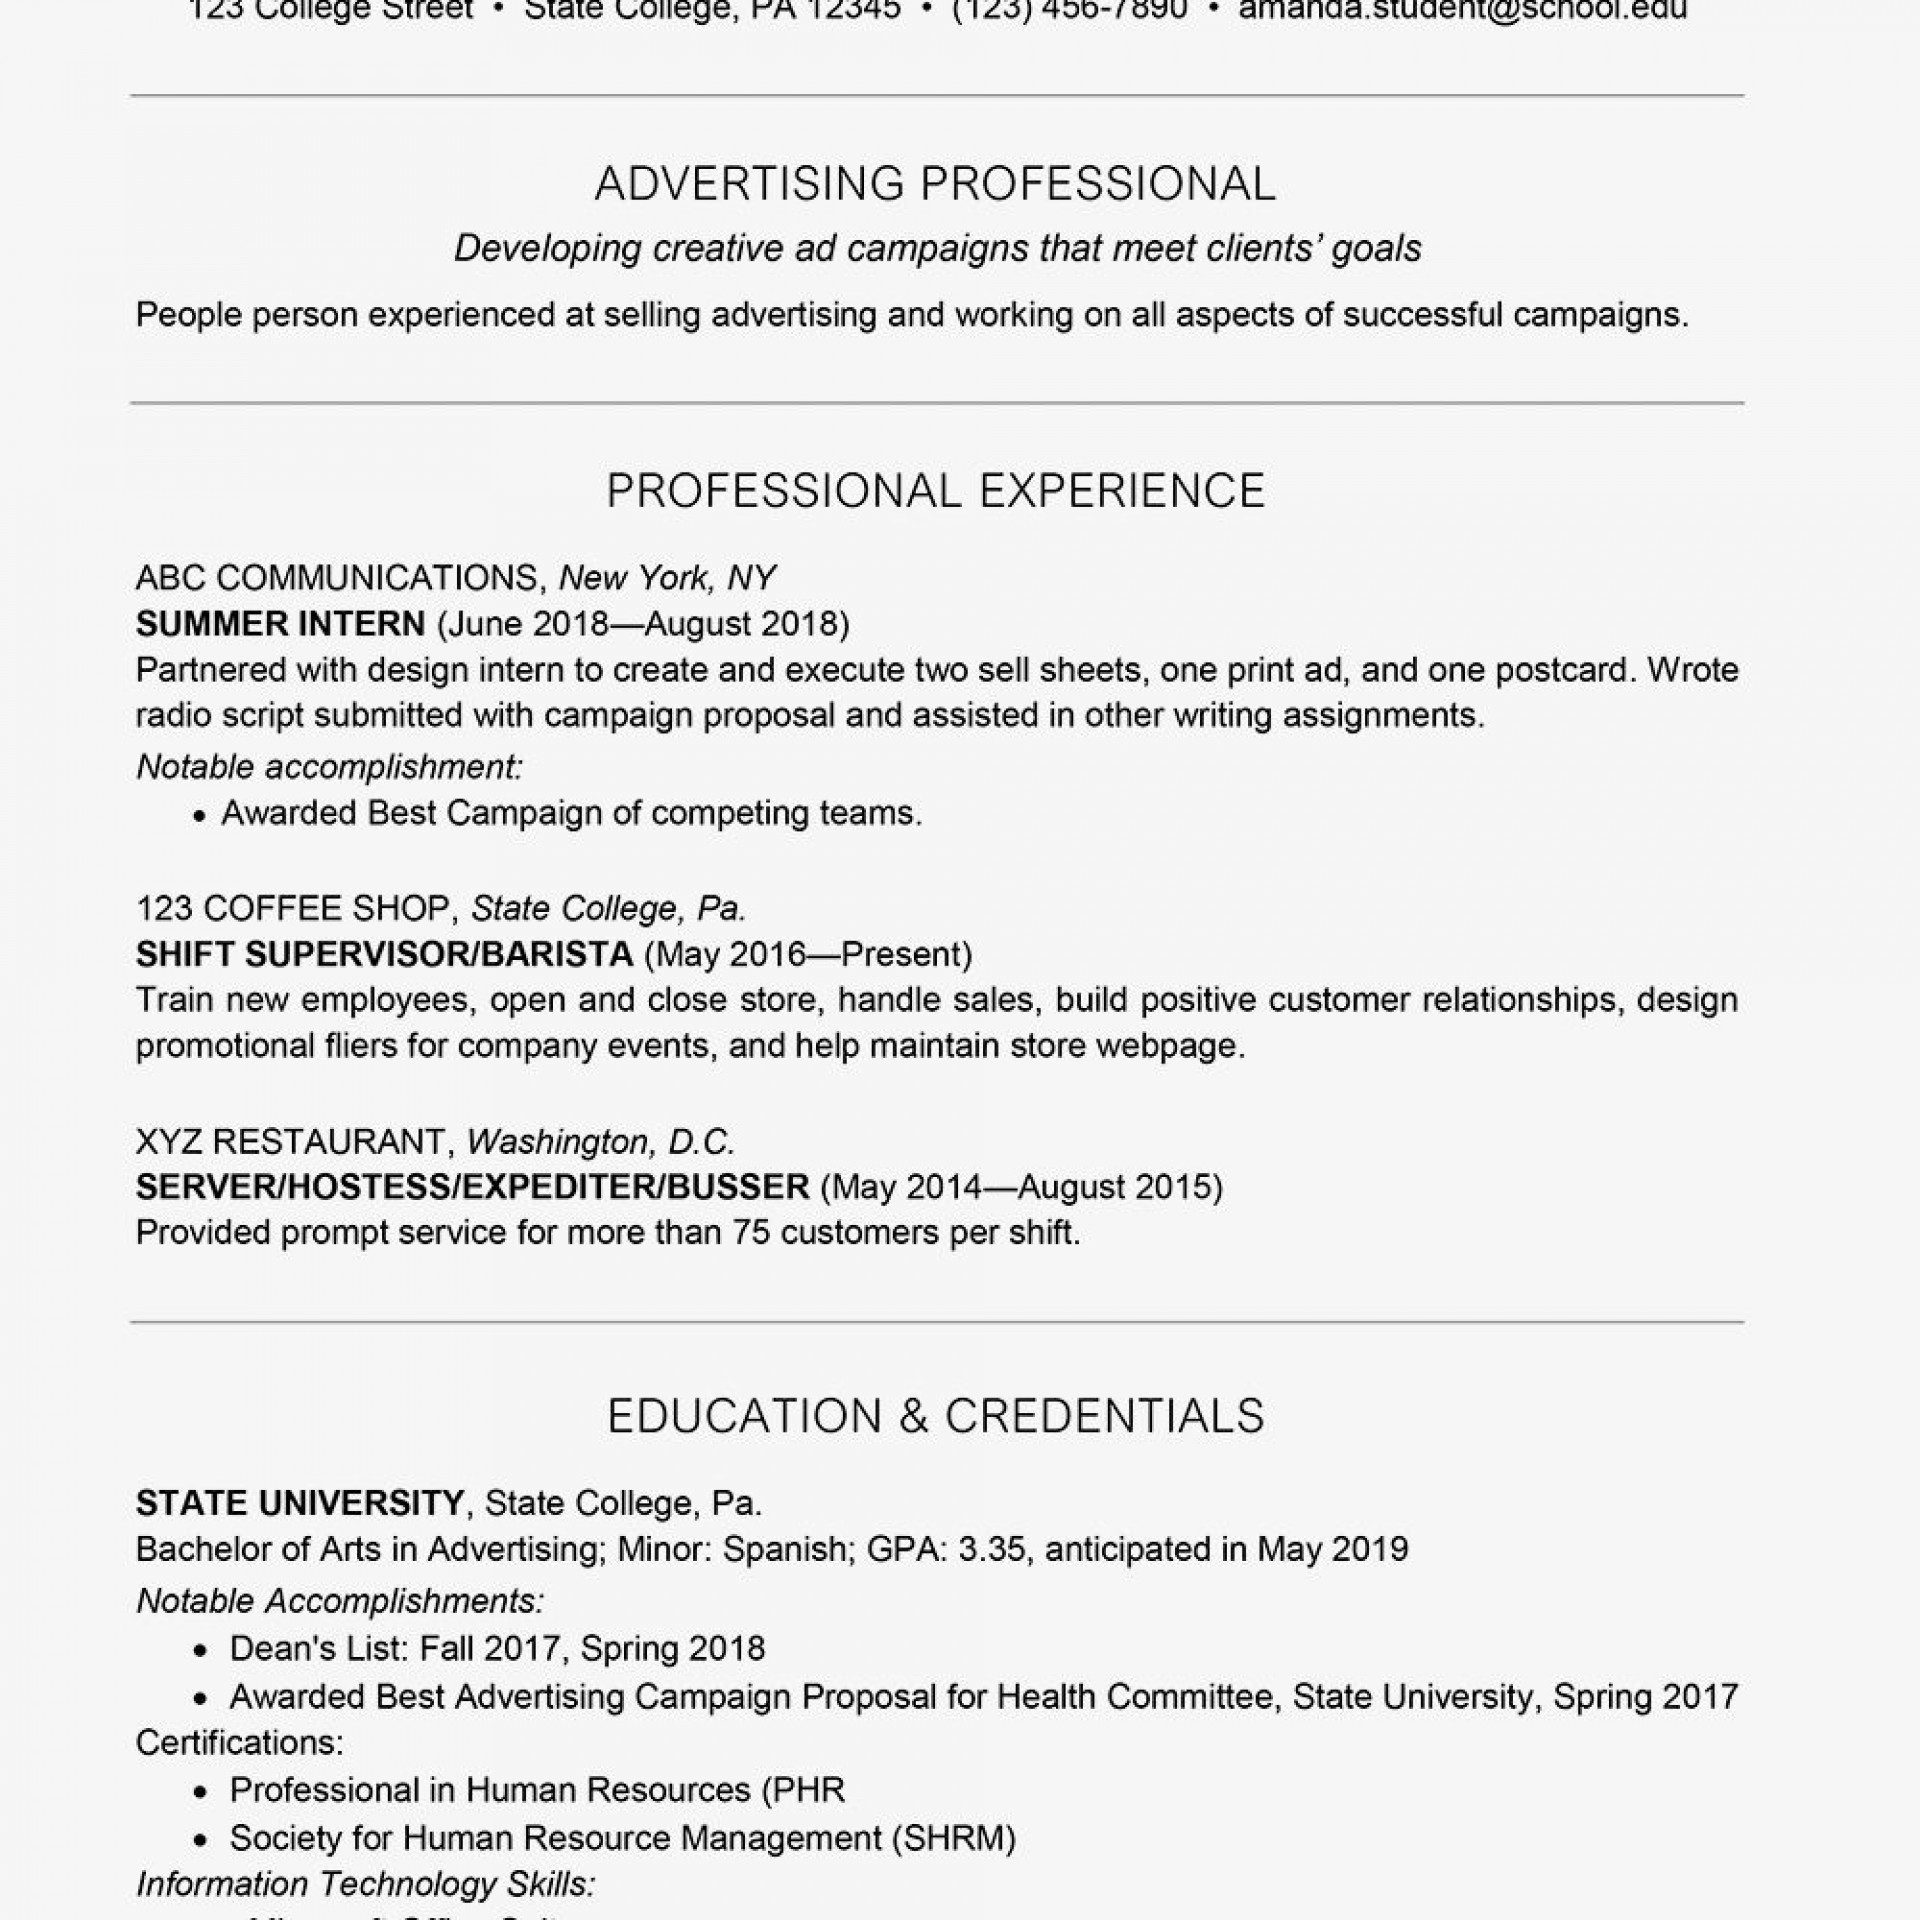 002 Amazing College Graduate Resume Template Highest Quality  Templates Grad Example Recent Objective1920